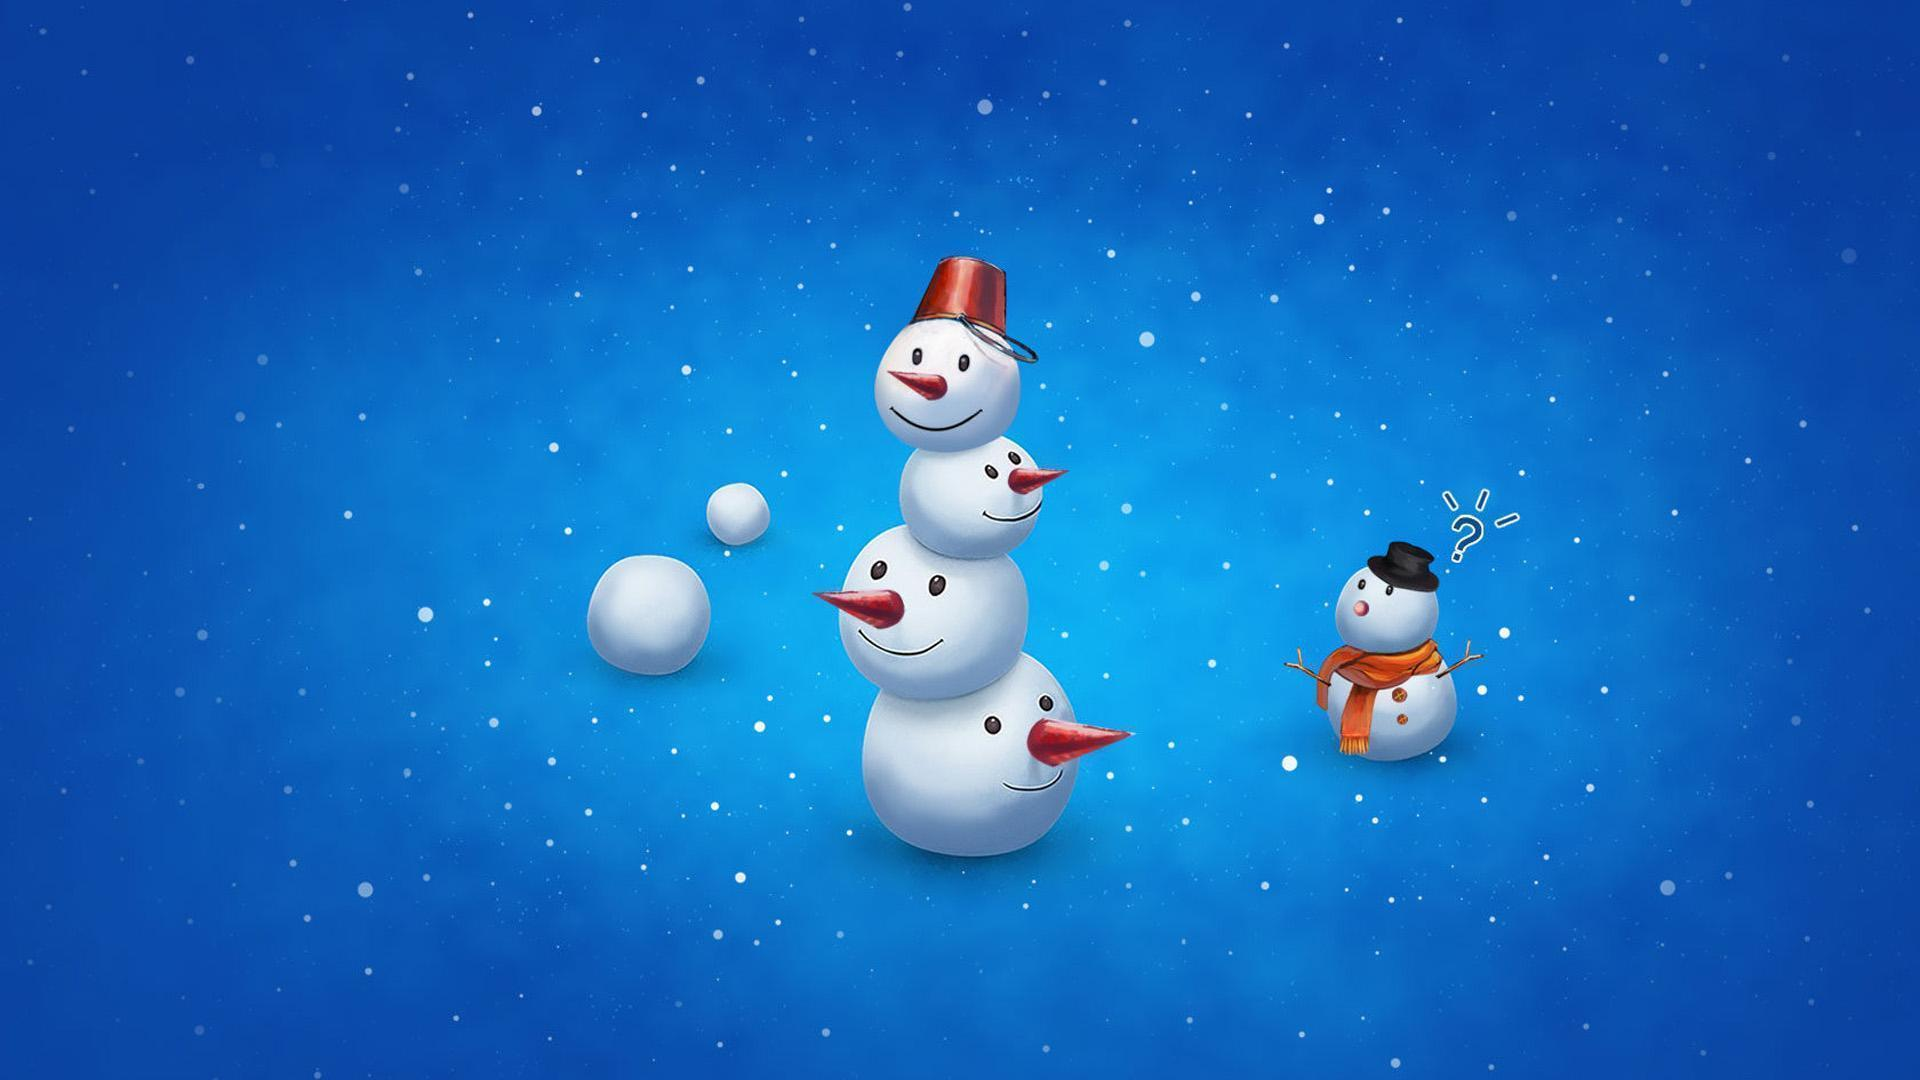 tag snowman desktop wallpapers - photo #37